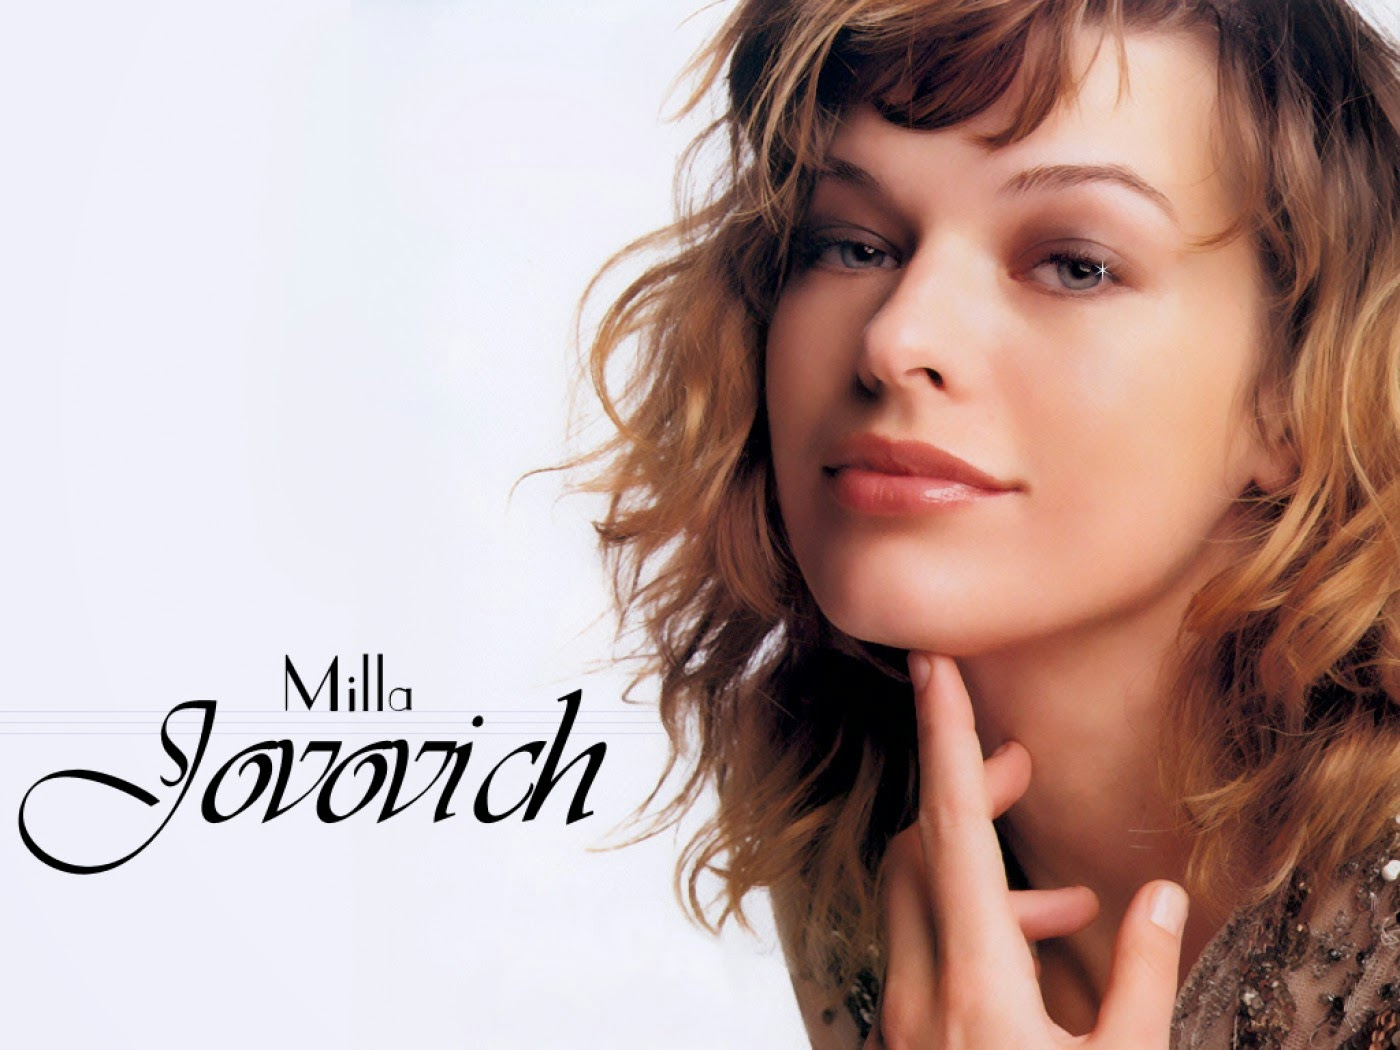 Milla Jovovich Wallpapers | Download Free High Definition ...